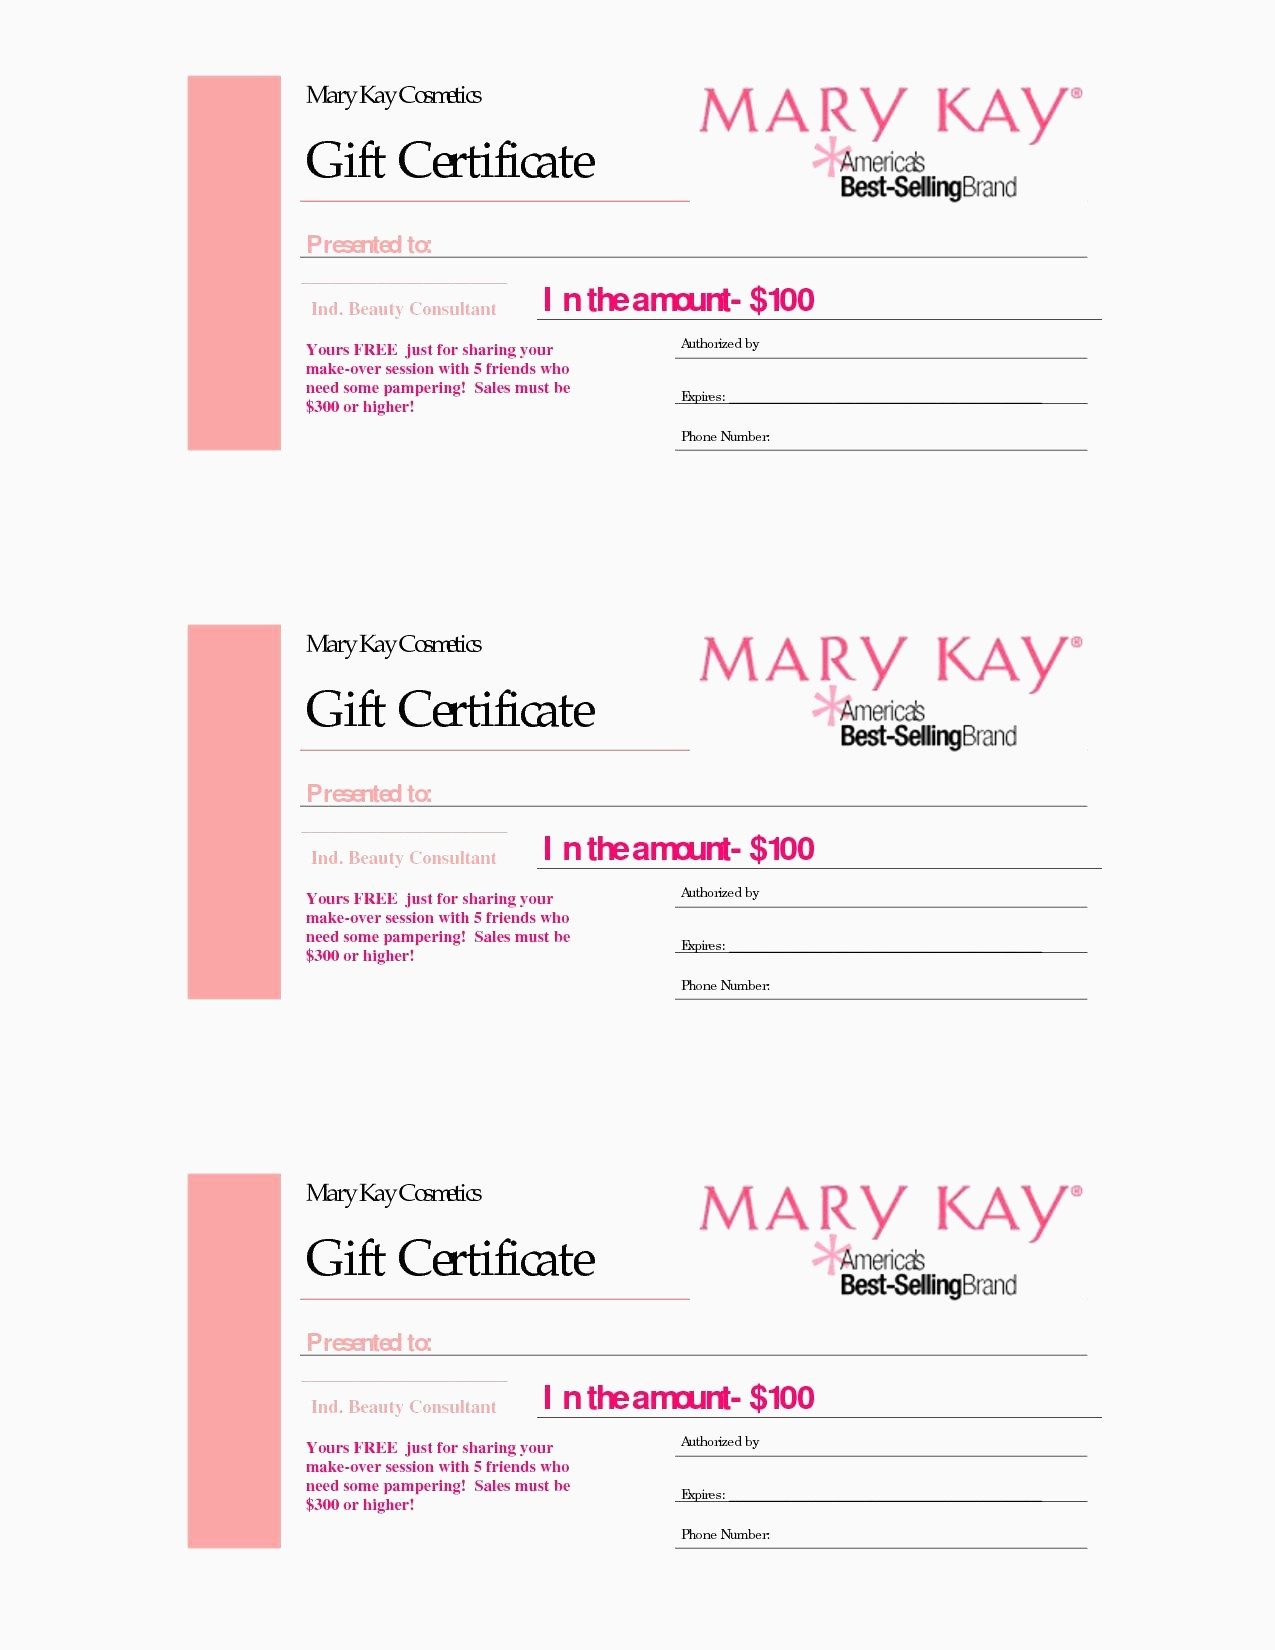 Printable Blank Gift Certificate Template Free Massage Awesome - Free Printable Gift Certificate Templates For Massage